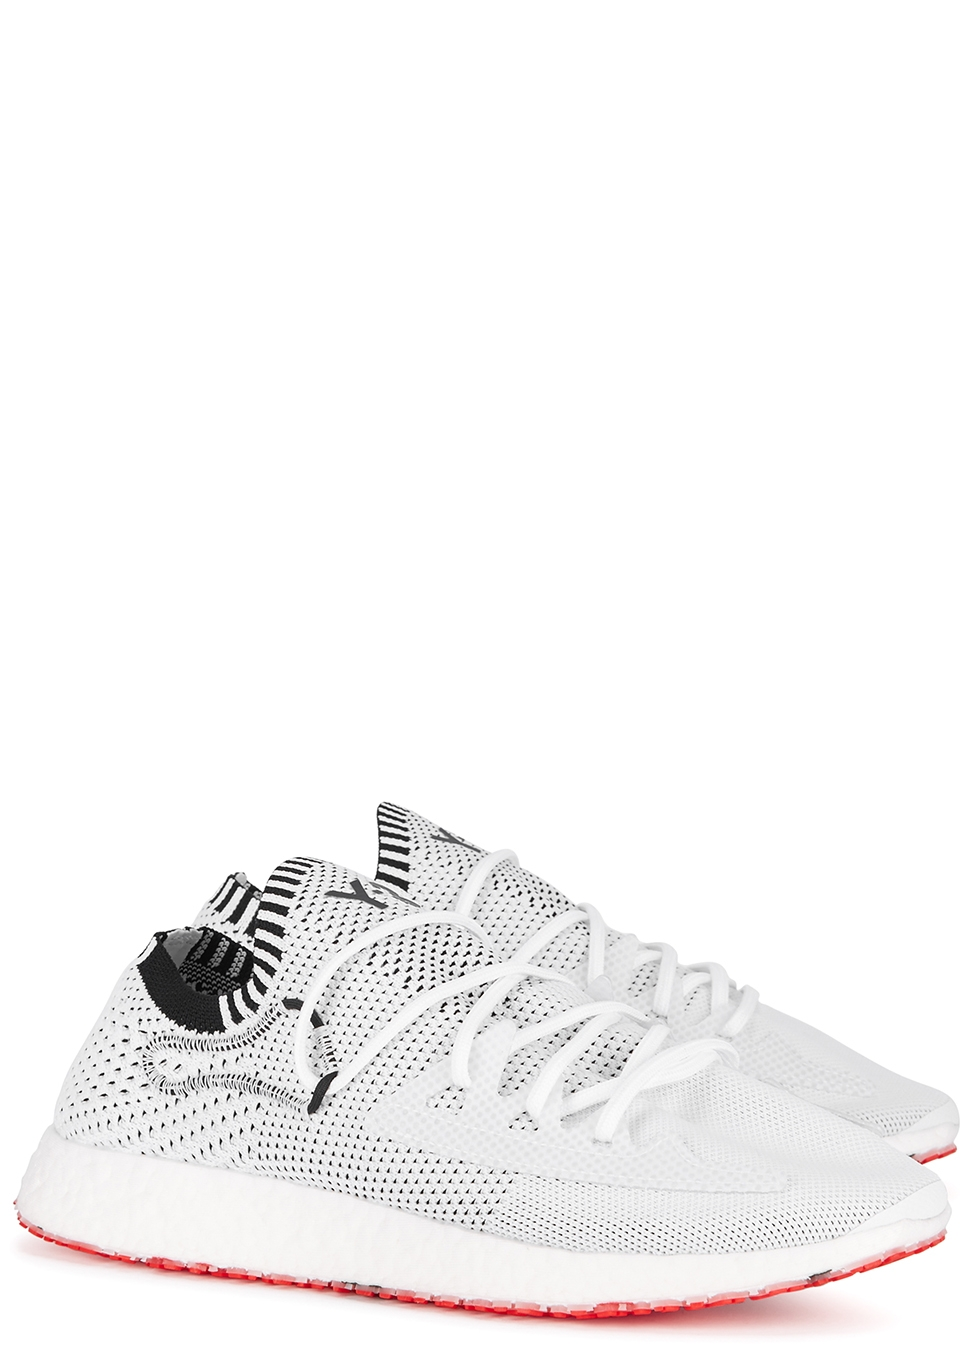 Raito white knitted mesh trainers - Y-3